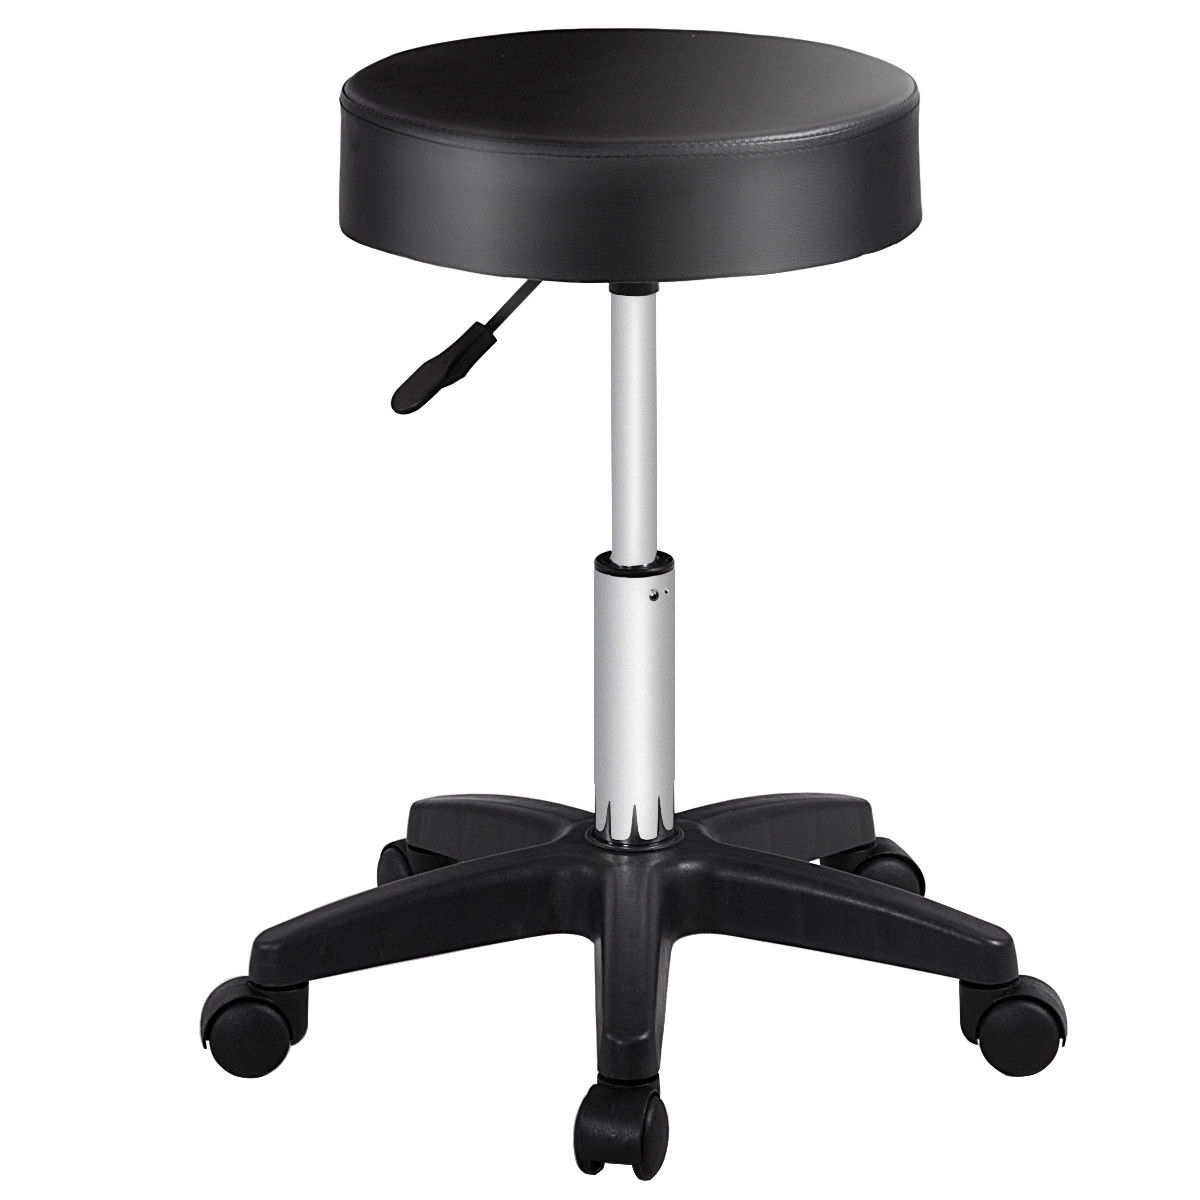 This comfortable PU leather cushion seat stools with adjustable height on casters for easy mobility. It features steel frame, strong caster, PU padded seat cushion that all make it stable, sturdy and comfortable. The seat height is adjustable and ideal for being used in hairdressers, beauticians, barbers, dentists, tattoo makers. The hydraulic adjustable height with handles which can be easy and safe for adjustment. You can also move it easily with 5 wheels. If you are looking for a spa stool, don't hesitate to own it! Brand new and high quality 360° swivel design Wear-resisting, breathable, ageing resisting and no peculiar smell Round cushion, filled with high density high quality sponges, increasing comfort while not easy to deform Hydraulic adjustable height with handle, easy and safe for adjustment Smooth to move with 5 wheels and easy to clean Contemporary design, perfect for bars, pub, salon, spa, medical office, massage, etc. Simple assem